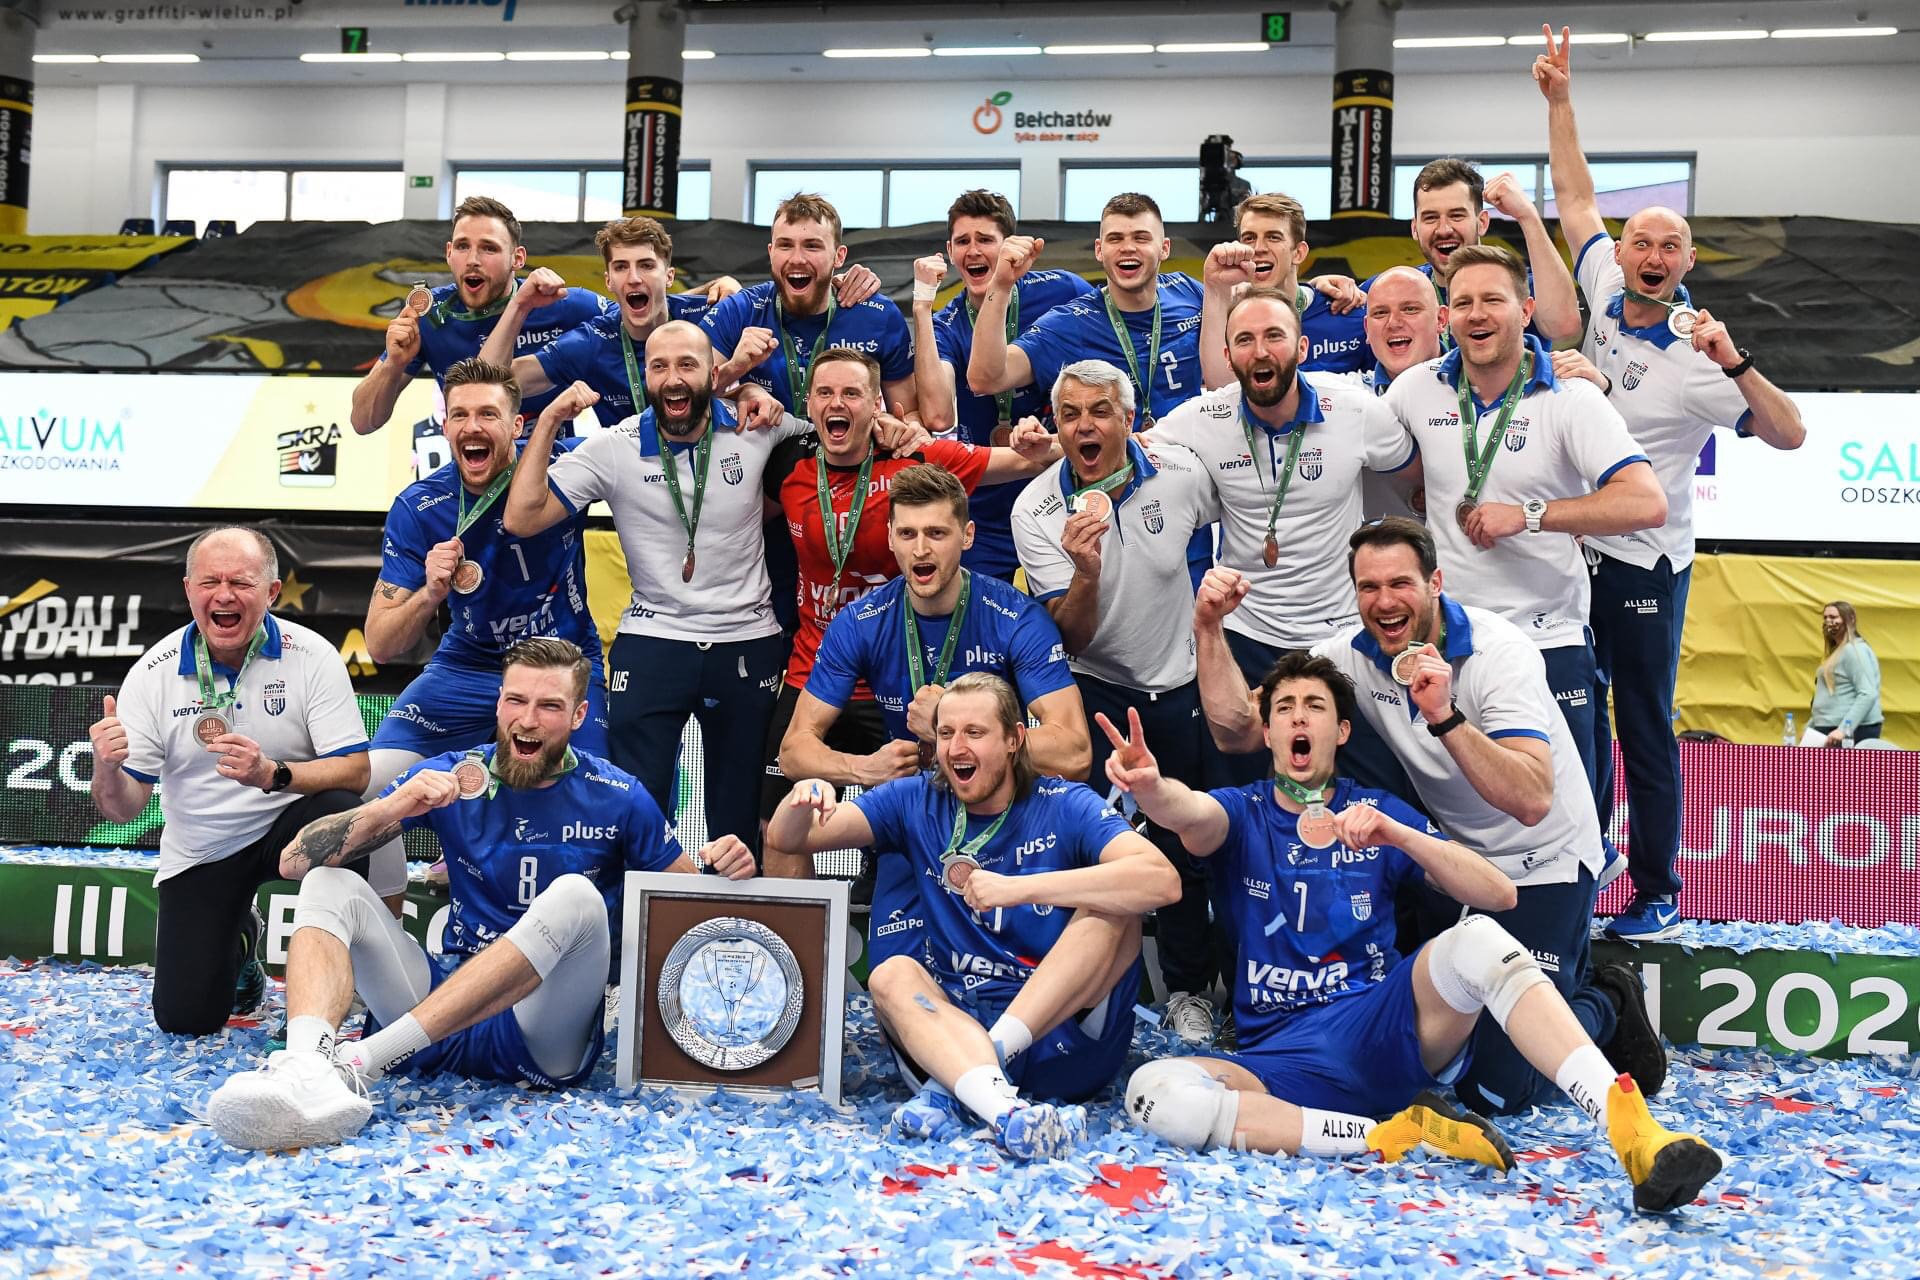 Poland: 3rd place and a place in Champions League for VERVA Warzawa ORLEN Paliwa